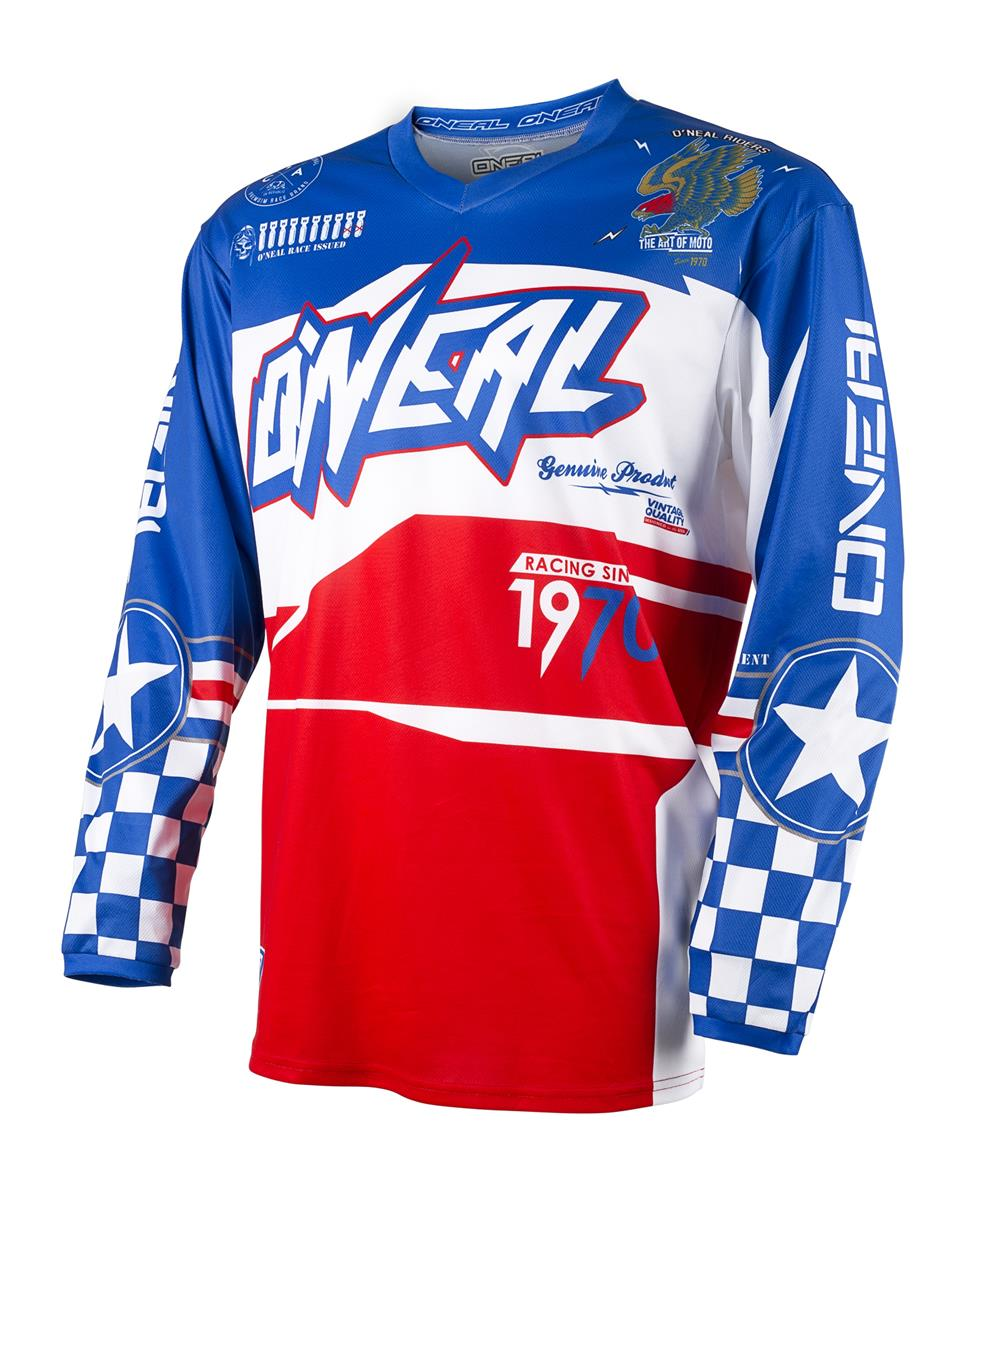 oneal-2017-sm-element-after-burner-jersey-bluered-adult-